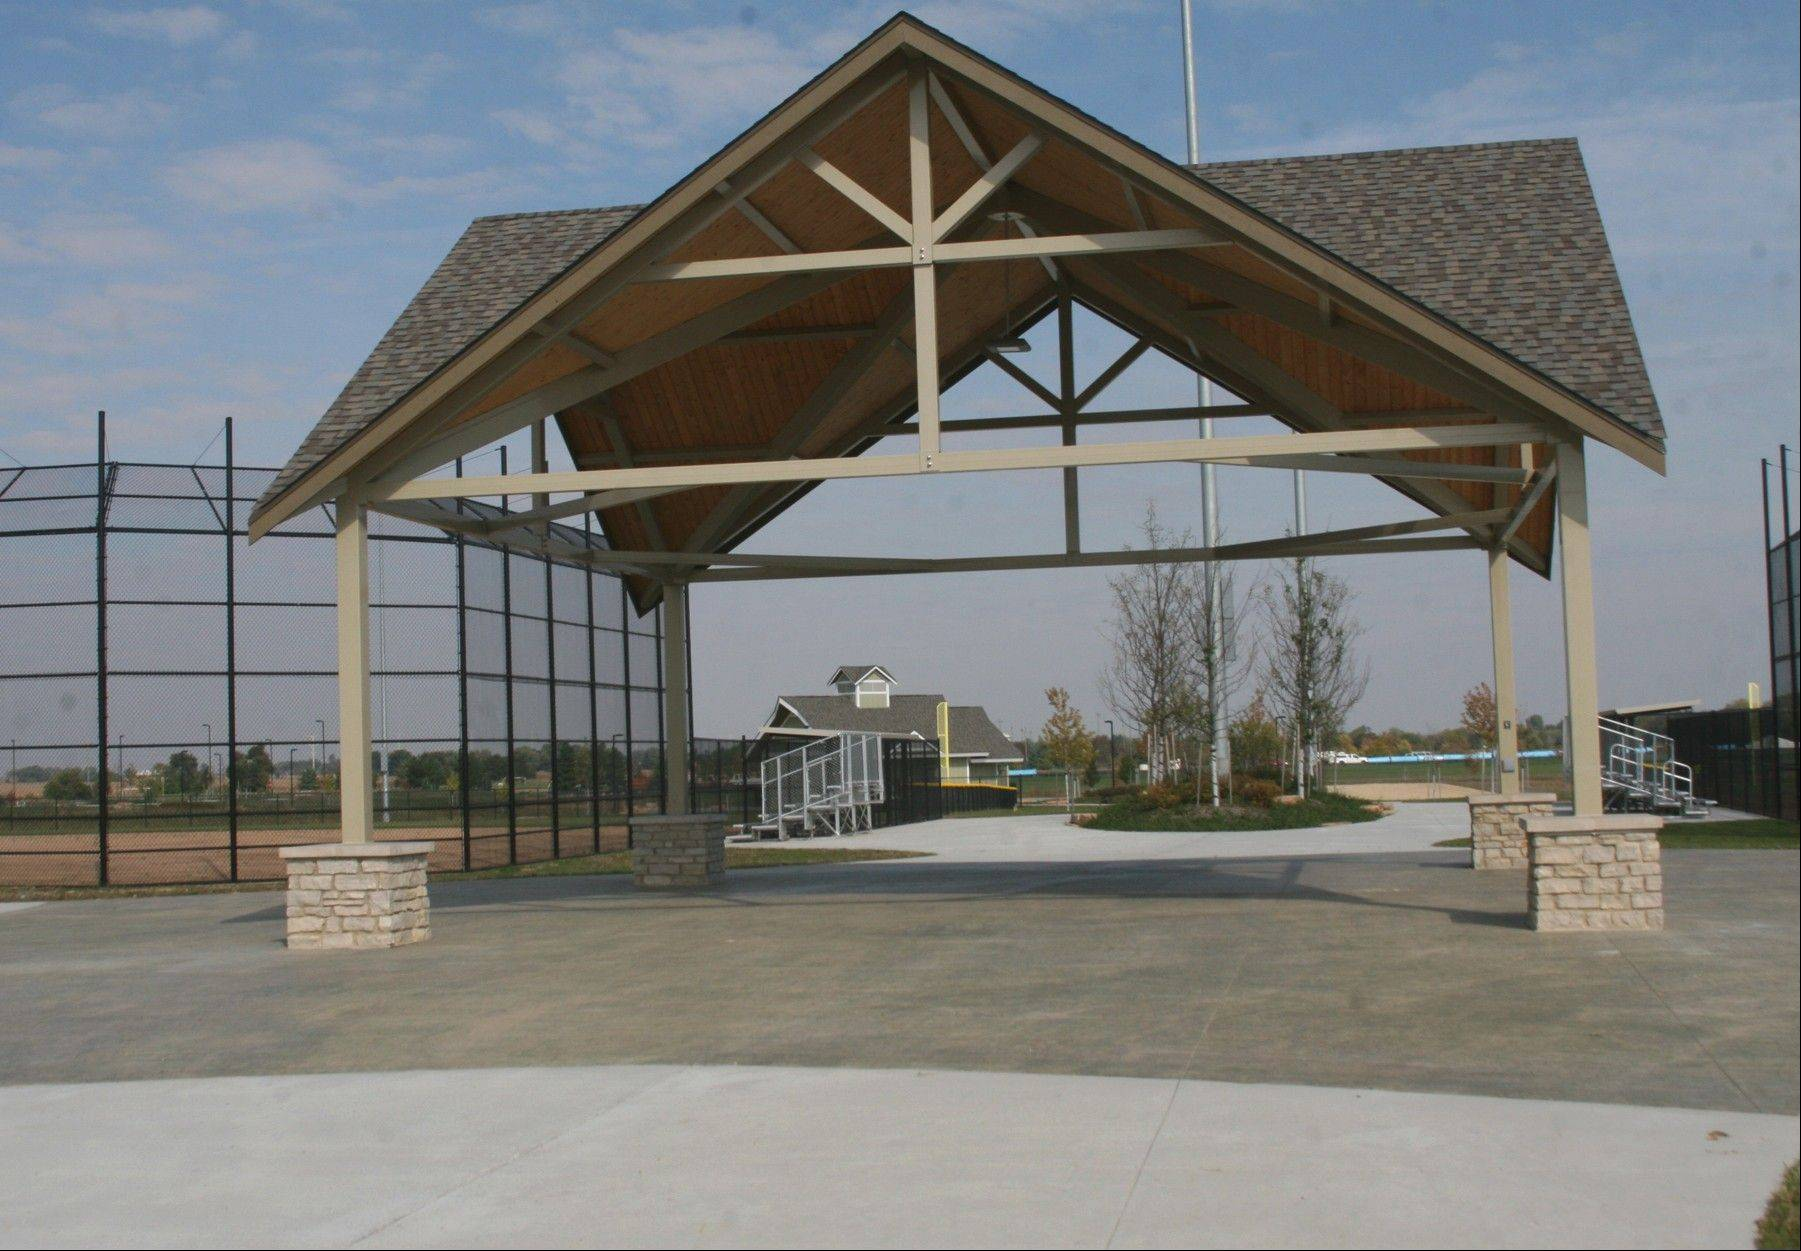 Four new ball fields radiate from a stylish shelter that serves as the hub for a 135-acre expansion -- which also includes 11 additional soccer fields -- at Stuart Sports Complex in Montgomery. Estimates are for a mid-2014 opening.